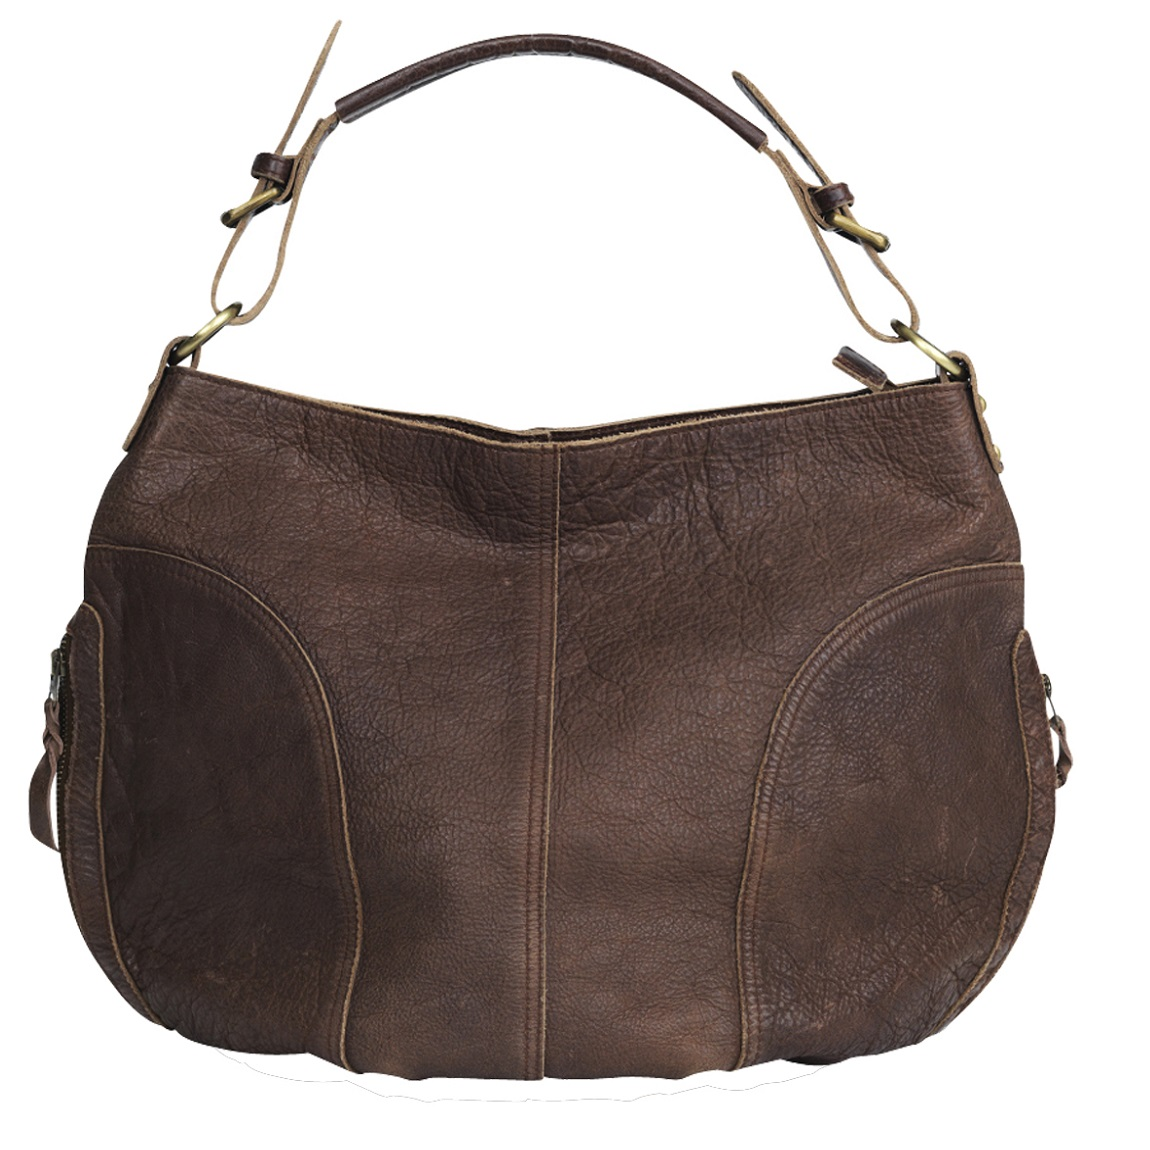 The Moshi Handtasche Indiana Braun